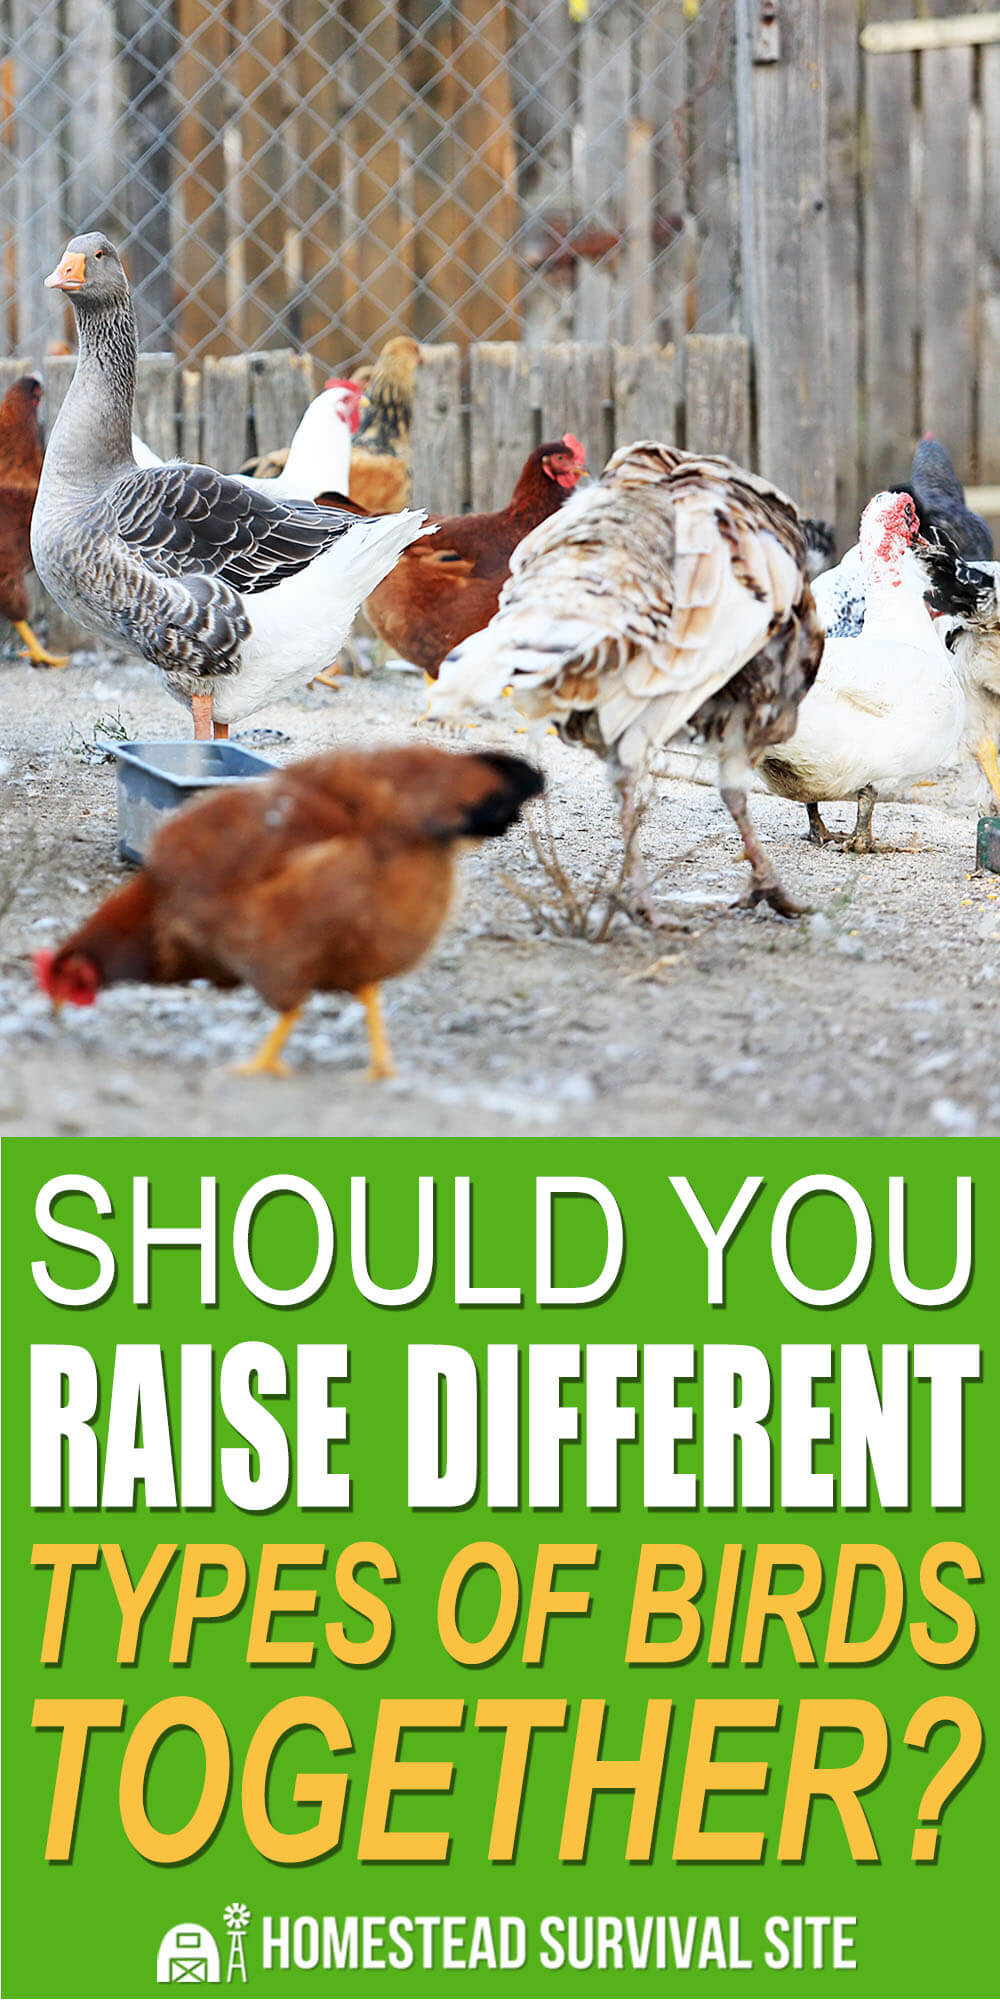 Should You Raise Different Types Of Birds Together?